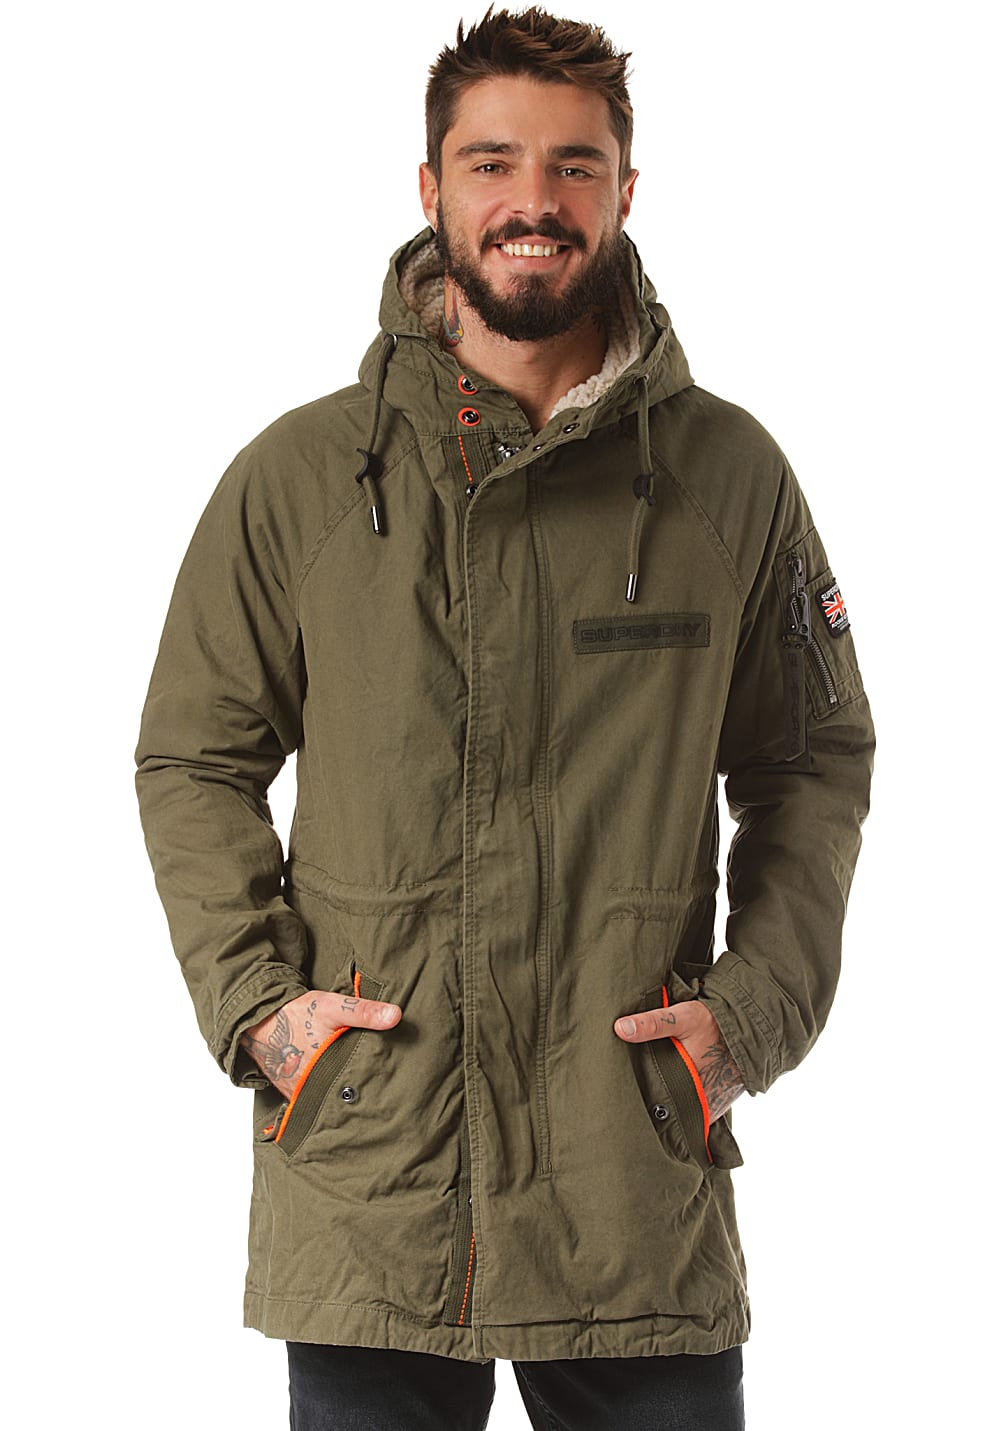 Herren Aviator Für Planet Superdry Grün Jacke Winter WDHEYI29